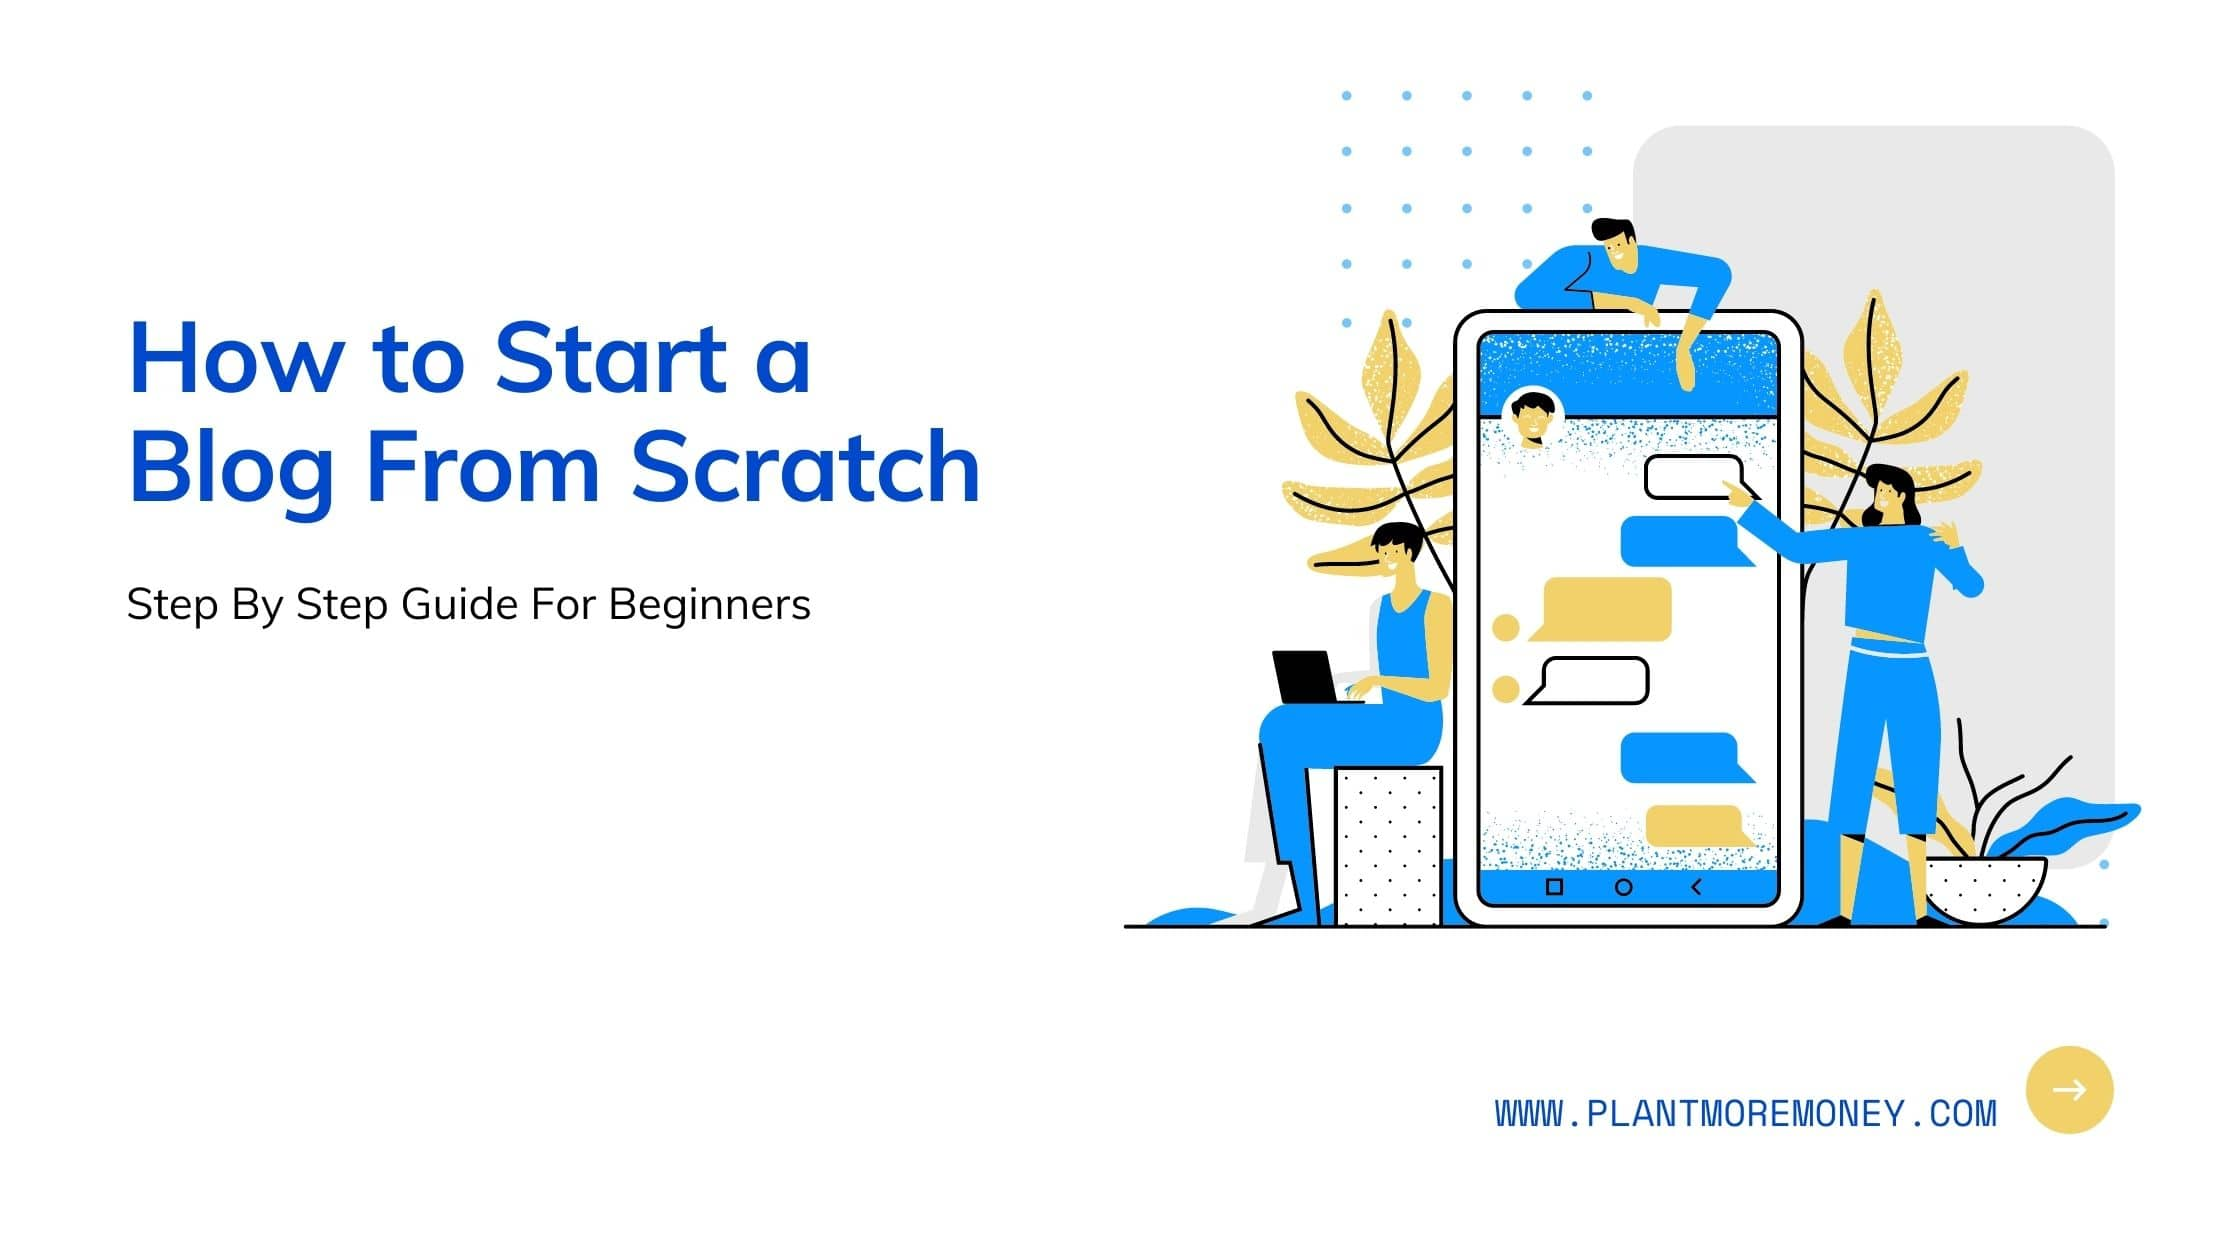 How to Start a Blog from Scratch in 2021 (Step-by-Step Guide For Beginners)